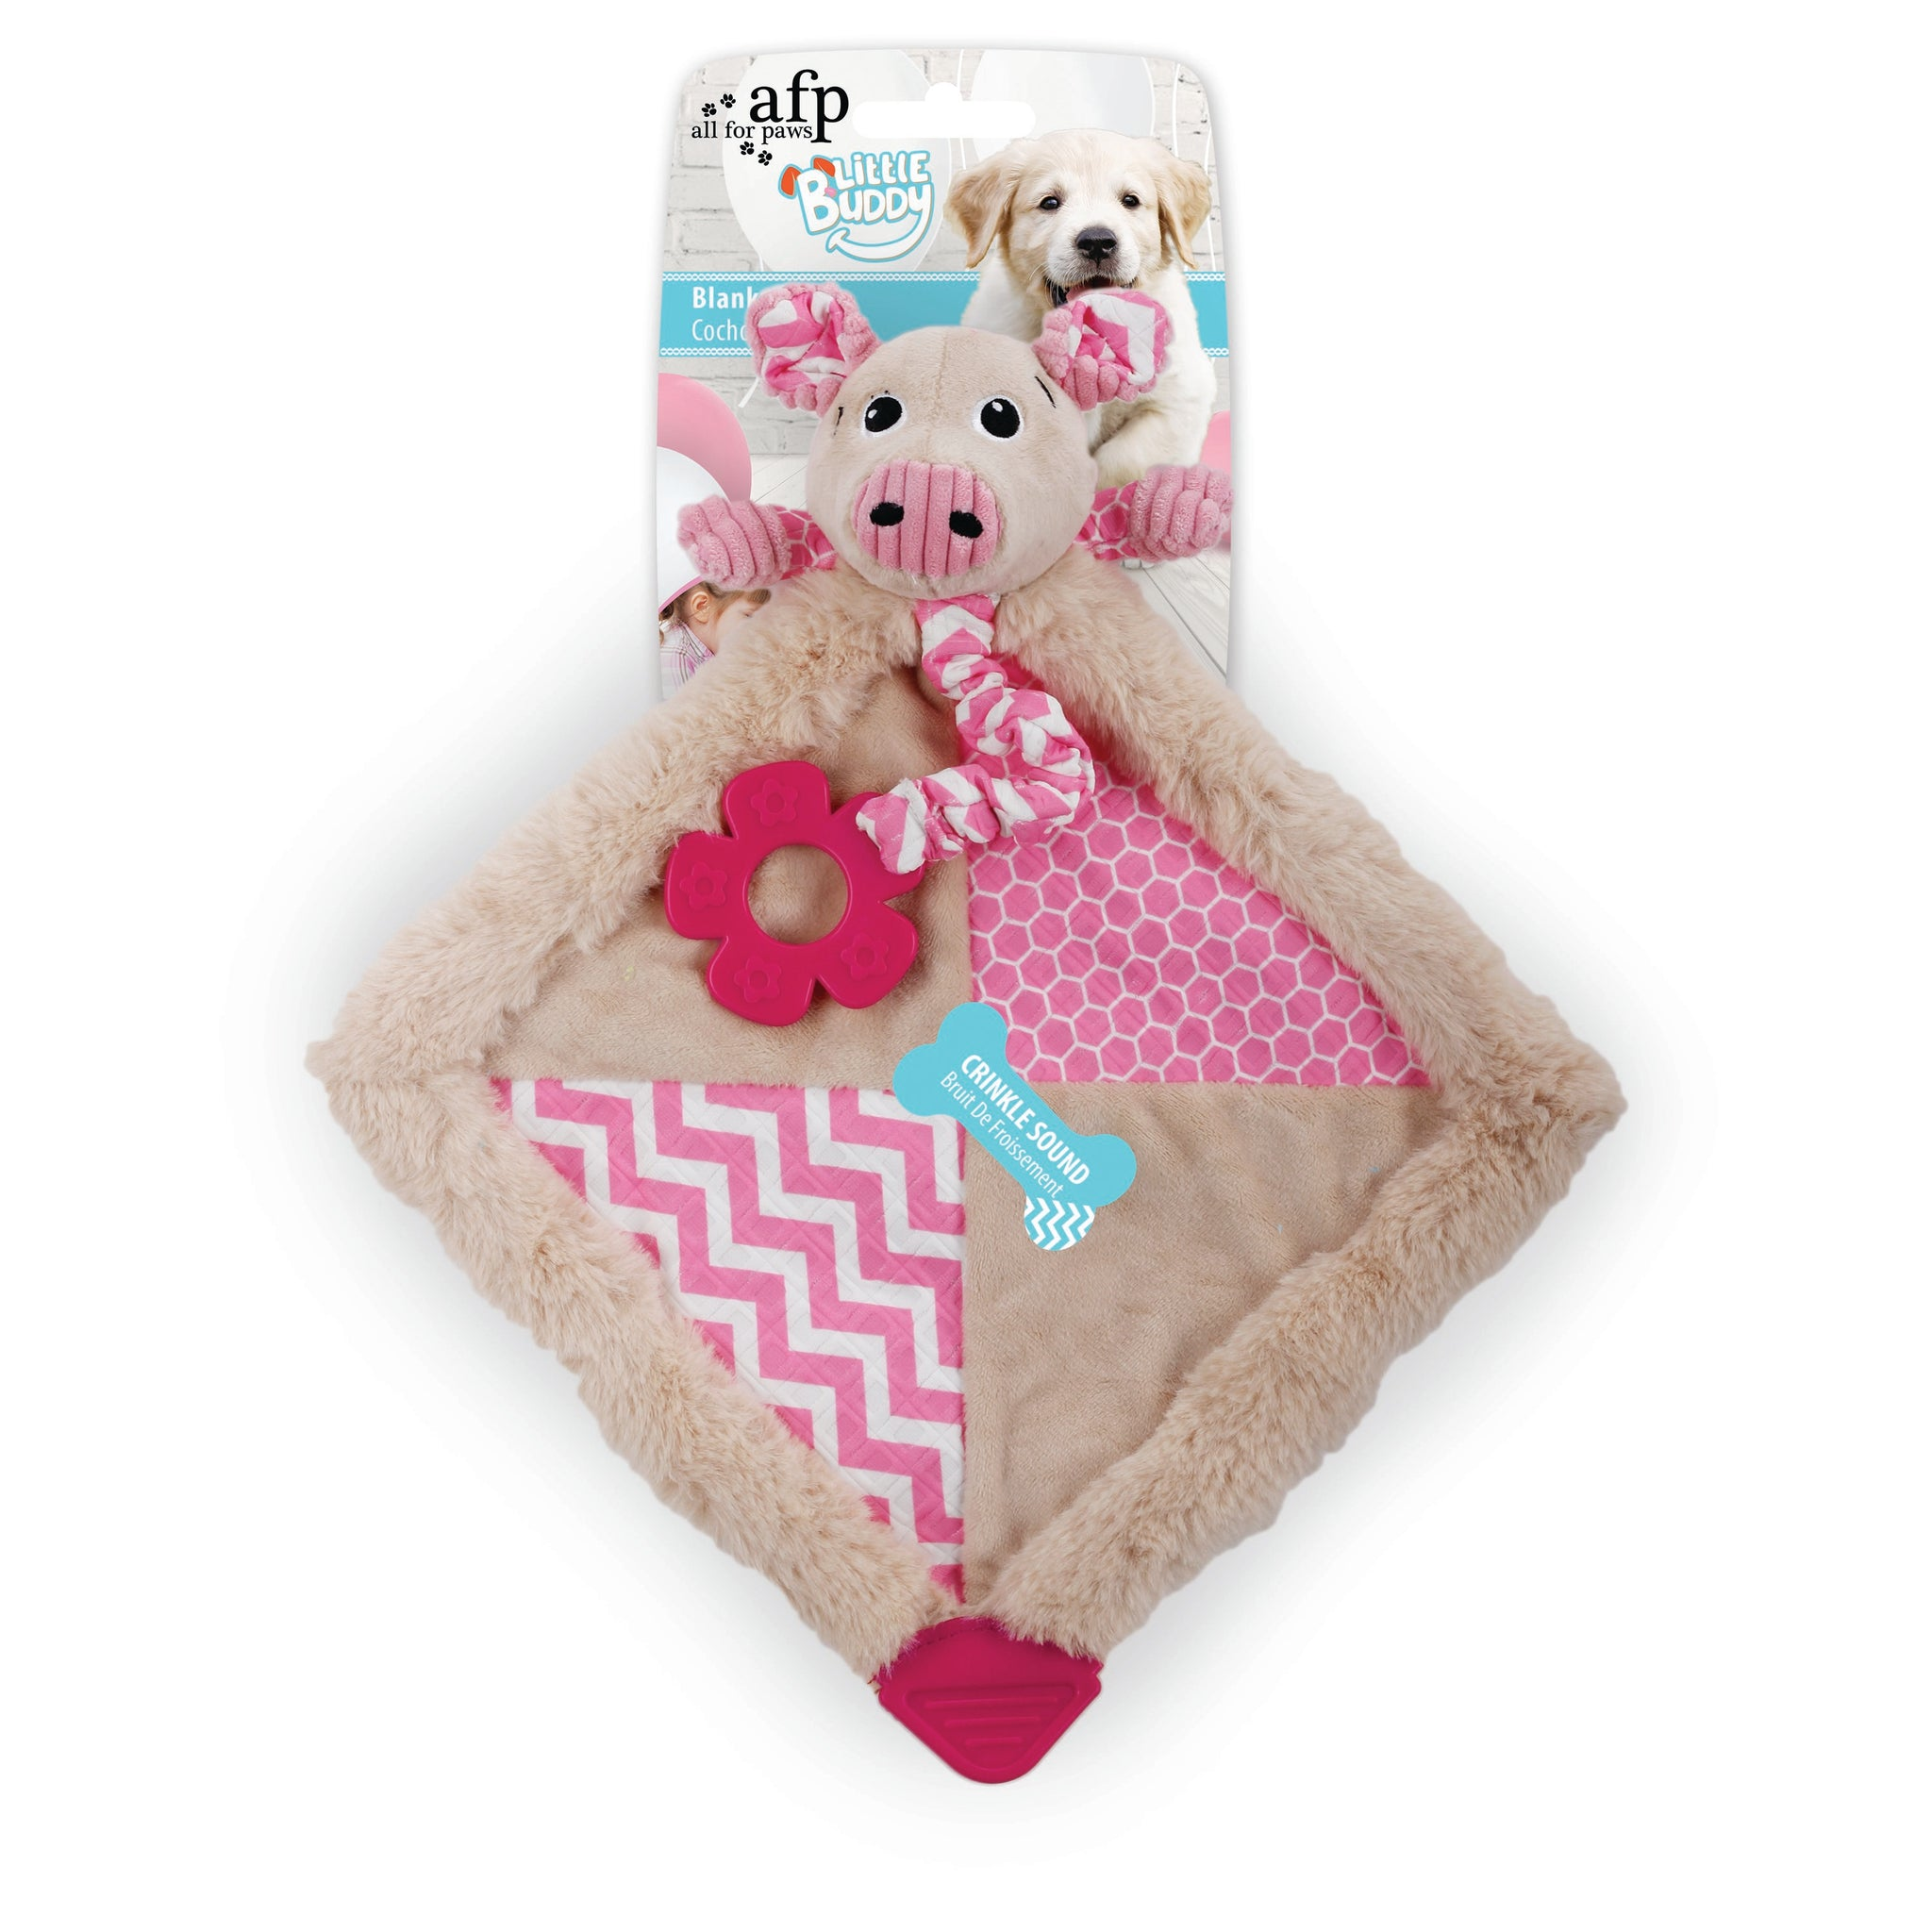 All For Paws Little Puppy Buddy Blanky Piggy - Fernie's Choice Classic Country Wear for Dogs